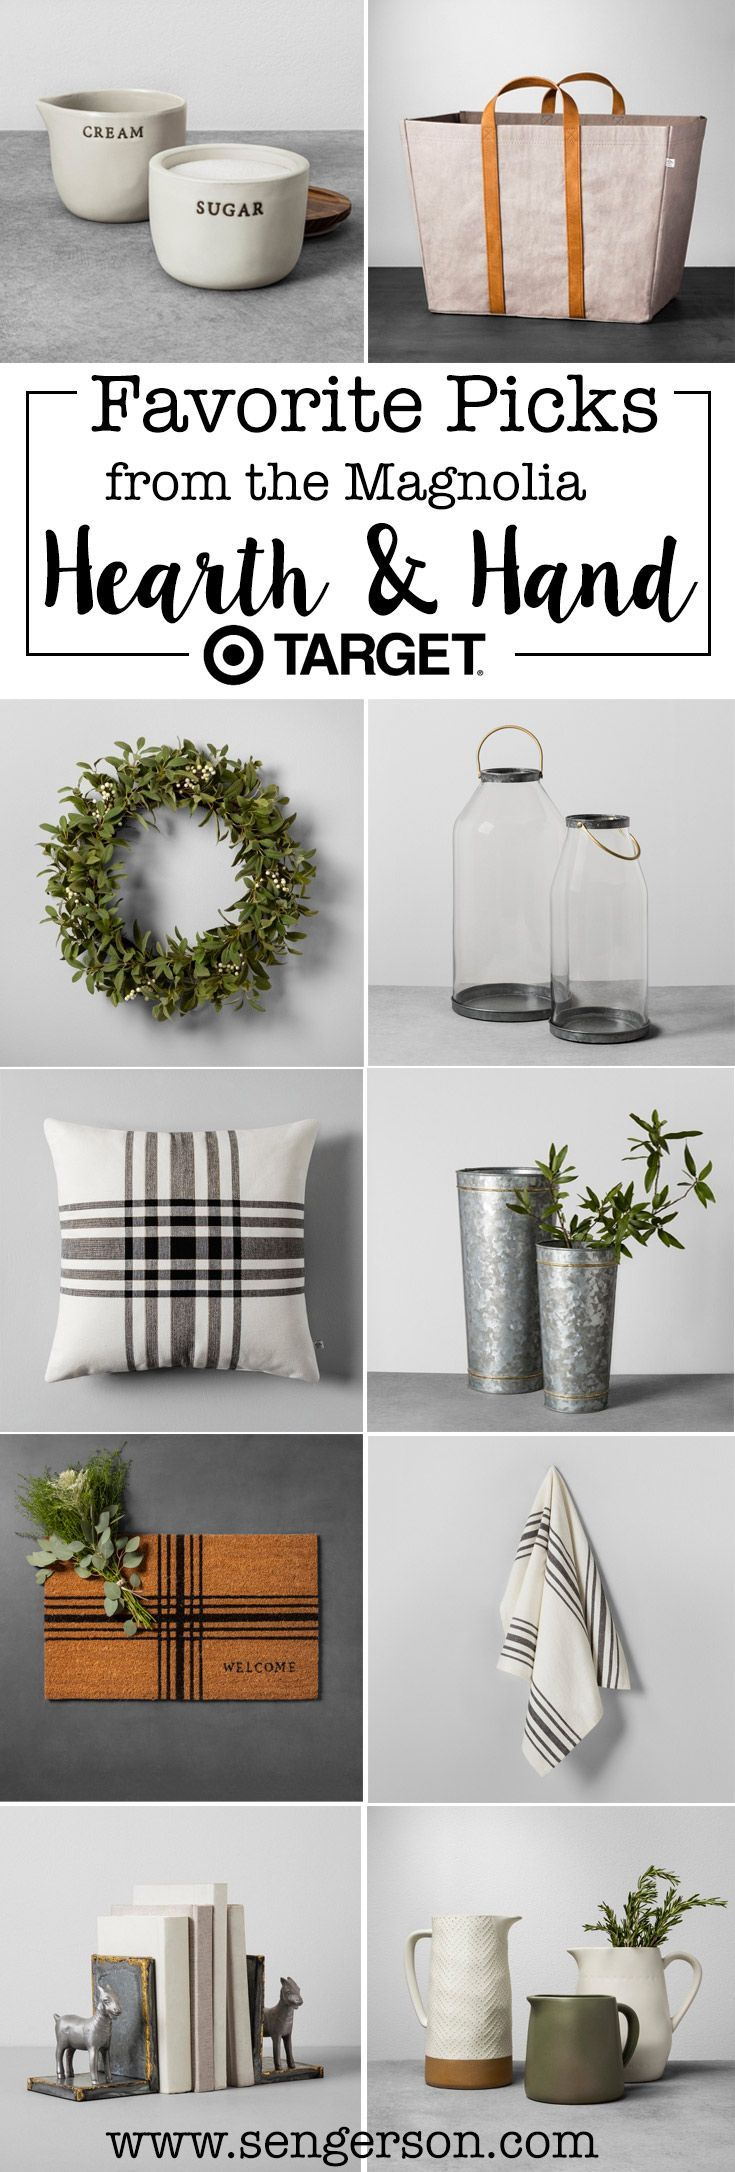 The best of the Hearth and Home Collection from Fixer Upper Magolia Homes stylist Joanna Gaines. I love how it has a farmhouse style appeal mixed with a mid-mod vibe! Loving these every day items!!